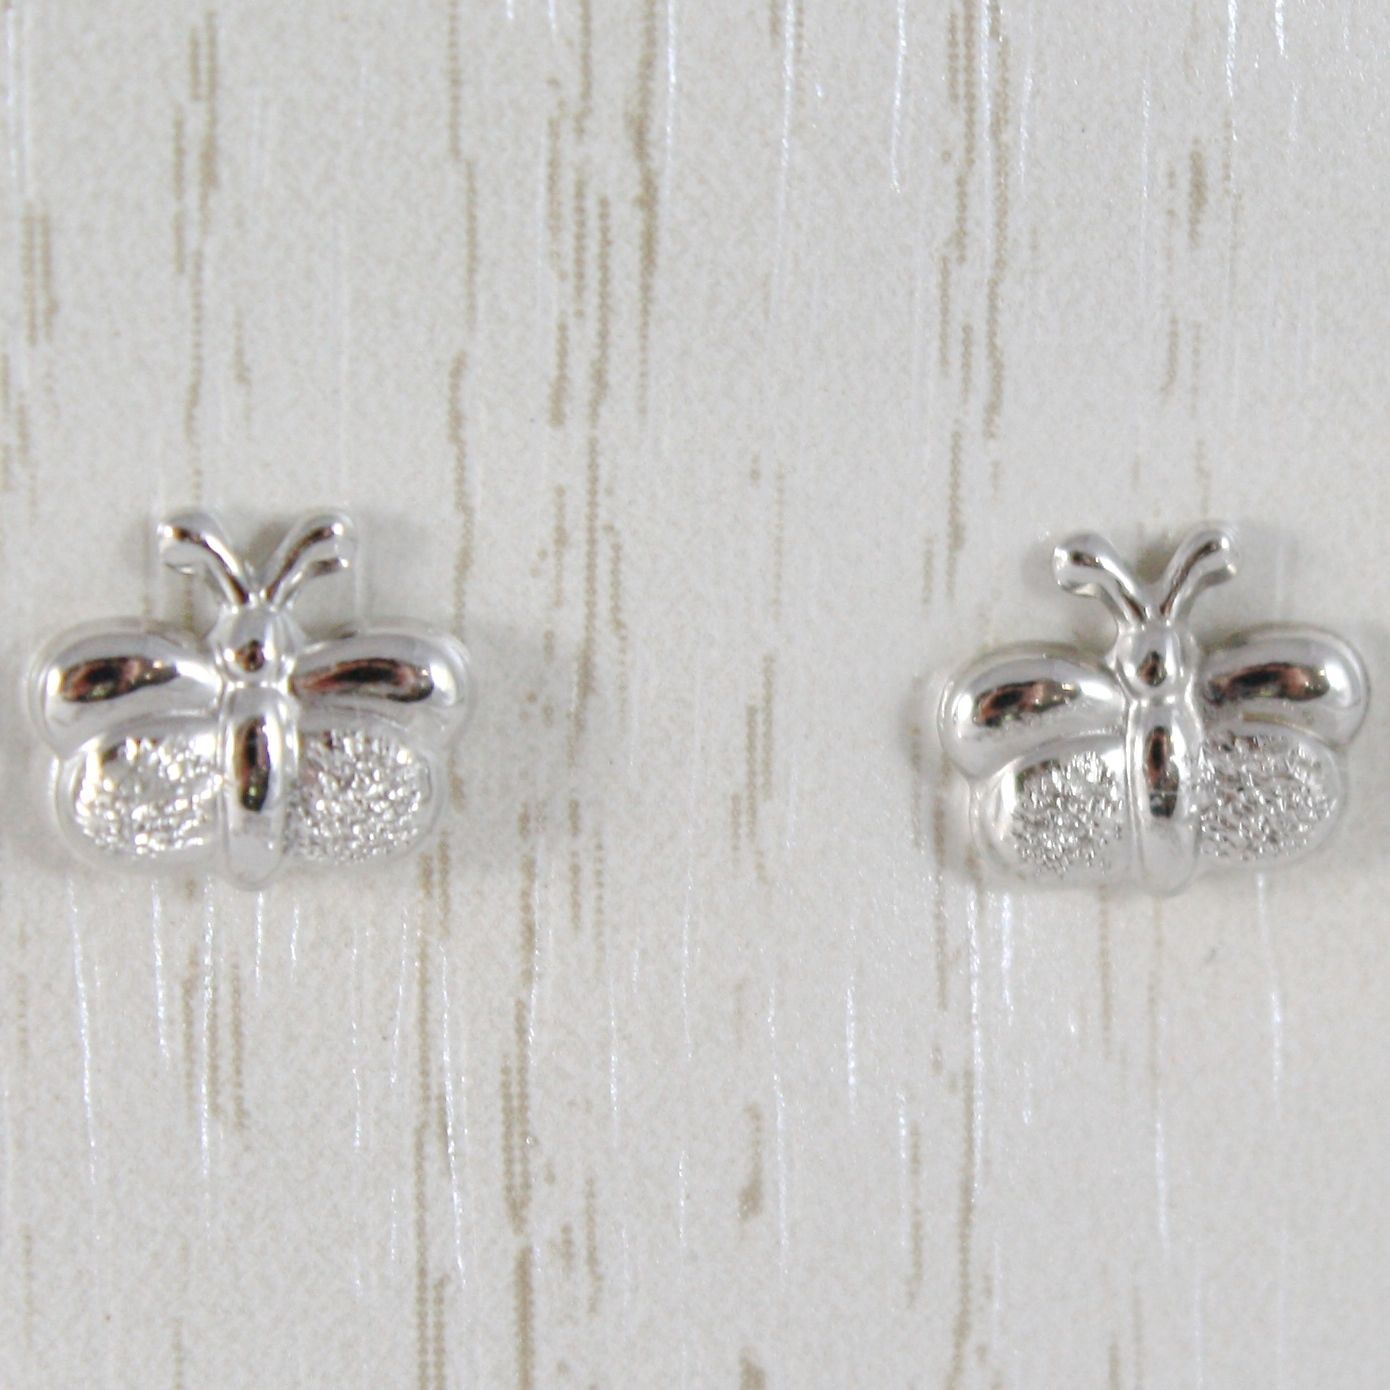 WHITE GOLD EARRINGS 750 18K LOBE, WITH BUTTERFLY LUCID AND SATIN